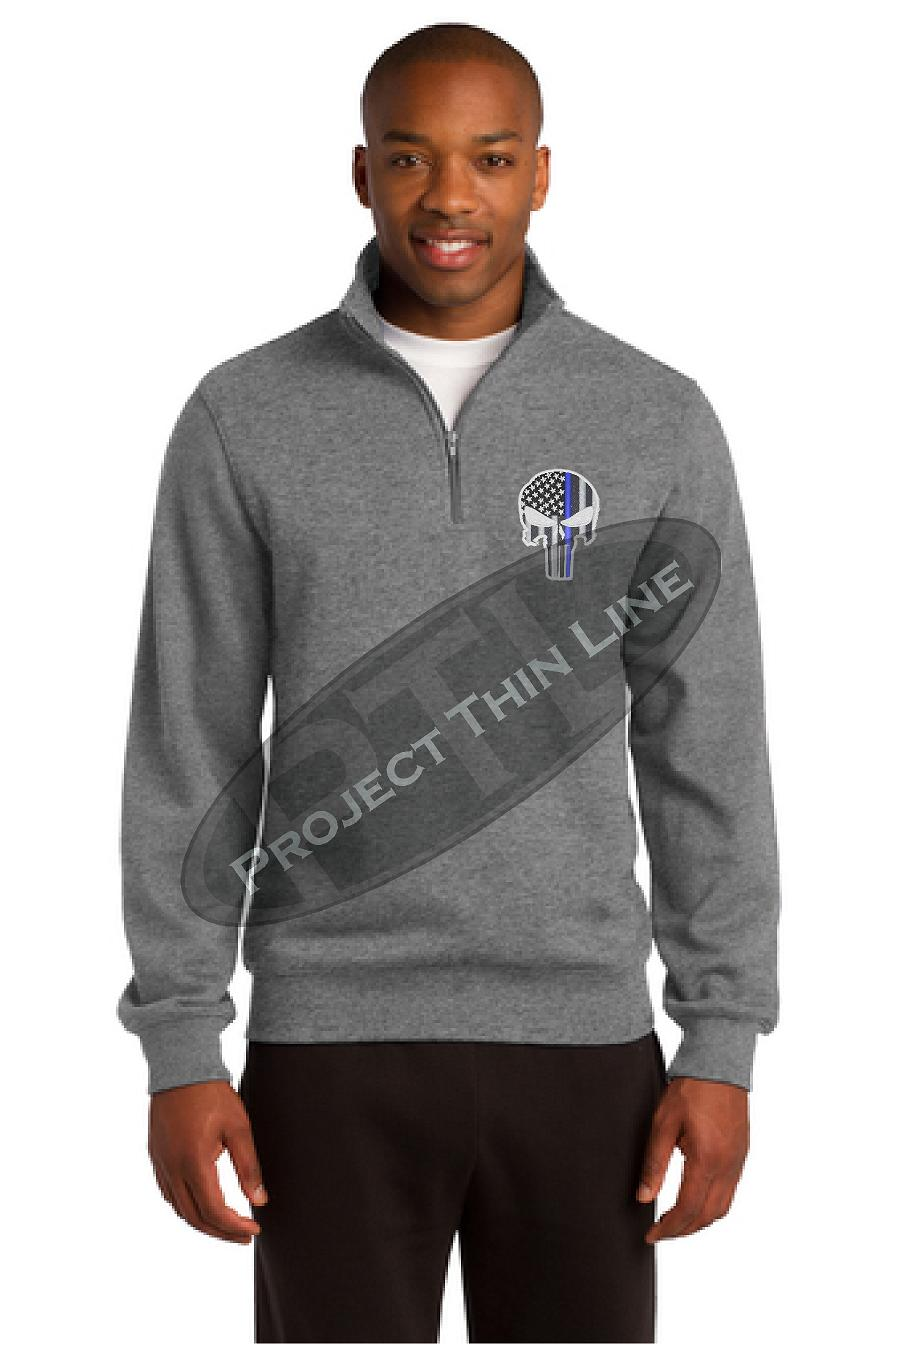 Men's Grey Thin Blue Line Skull 1/4 Zip Fleece Sweatshirt